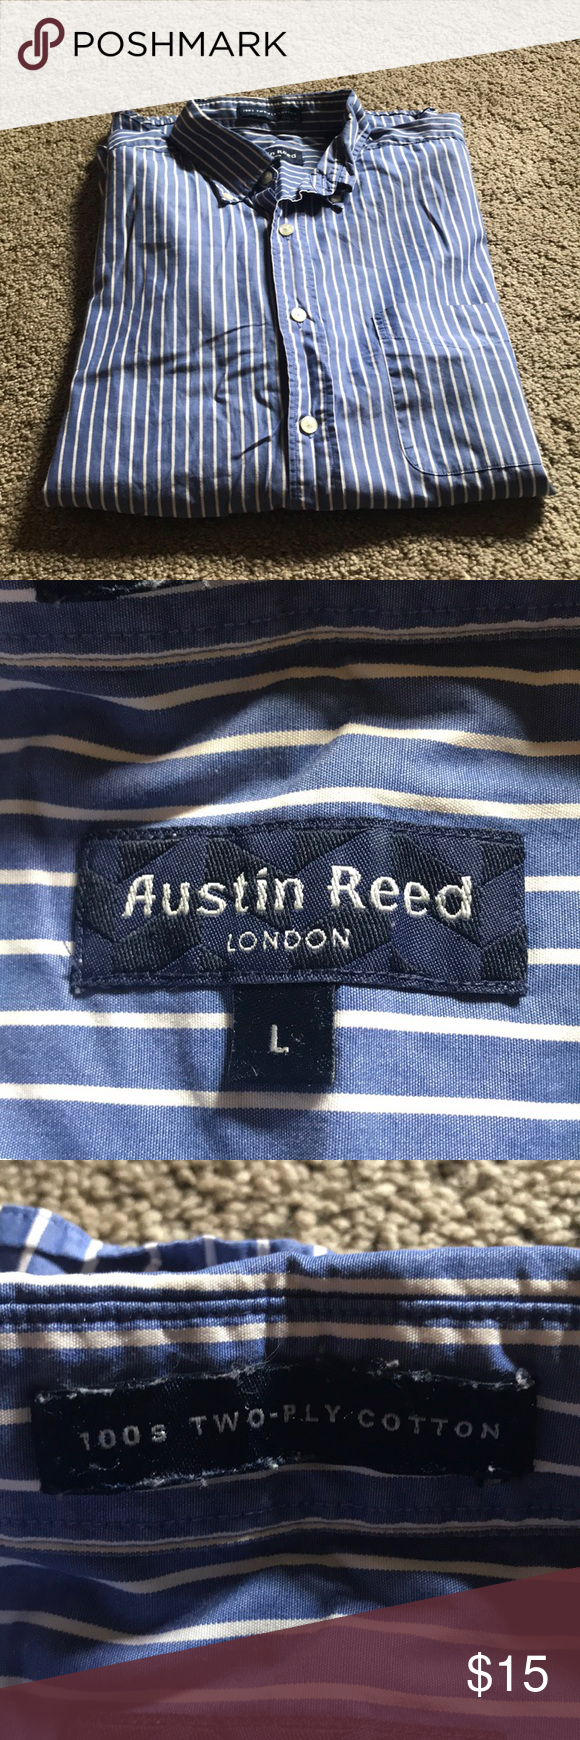 Austin Reed London Striped Long Sleeve Striped Long Sleeve Button Down Shirt Mens Casual Button Down Shirts